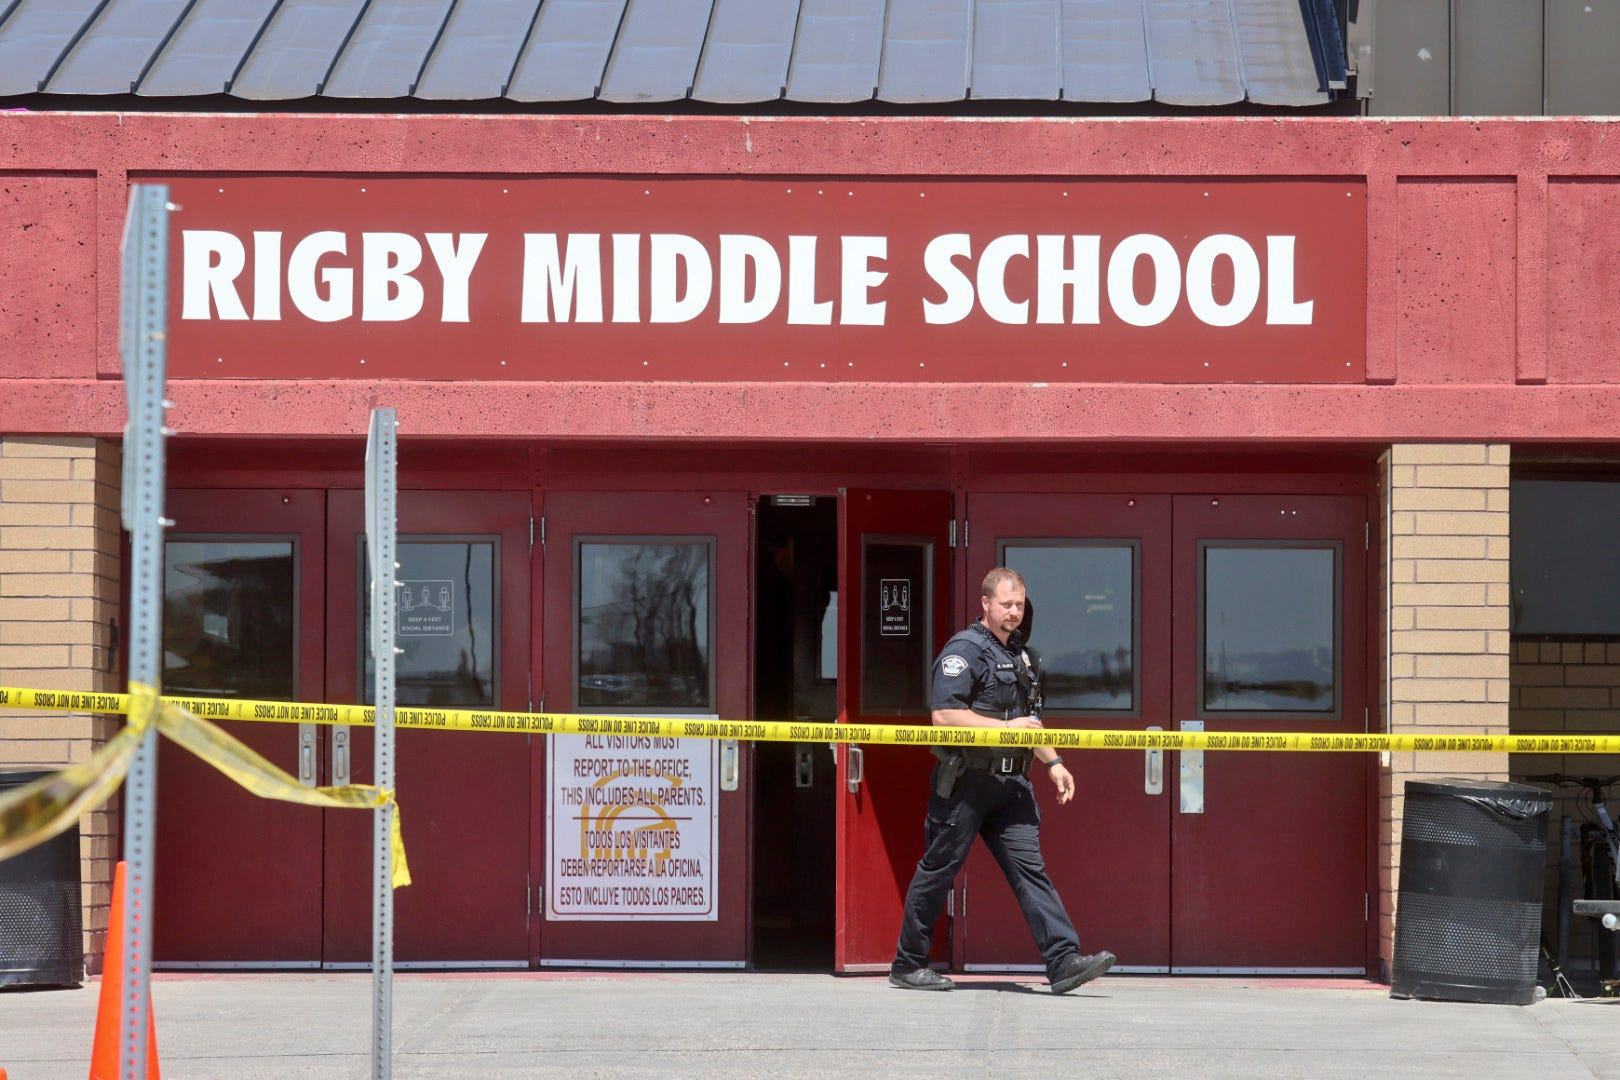 It s real : A 6th grade girl opened fire in Idaho middle school, injuring 3; horrified students thought it was a drill